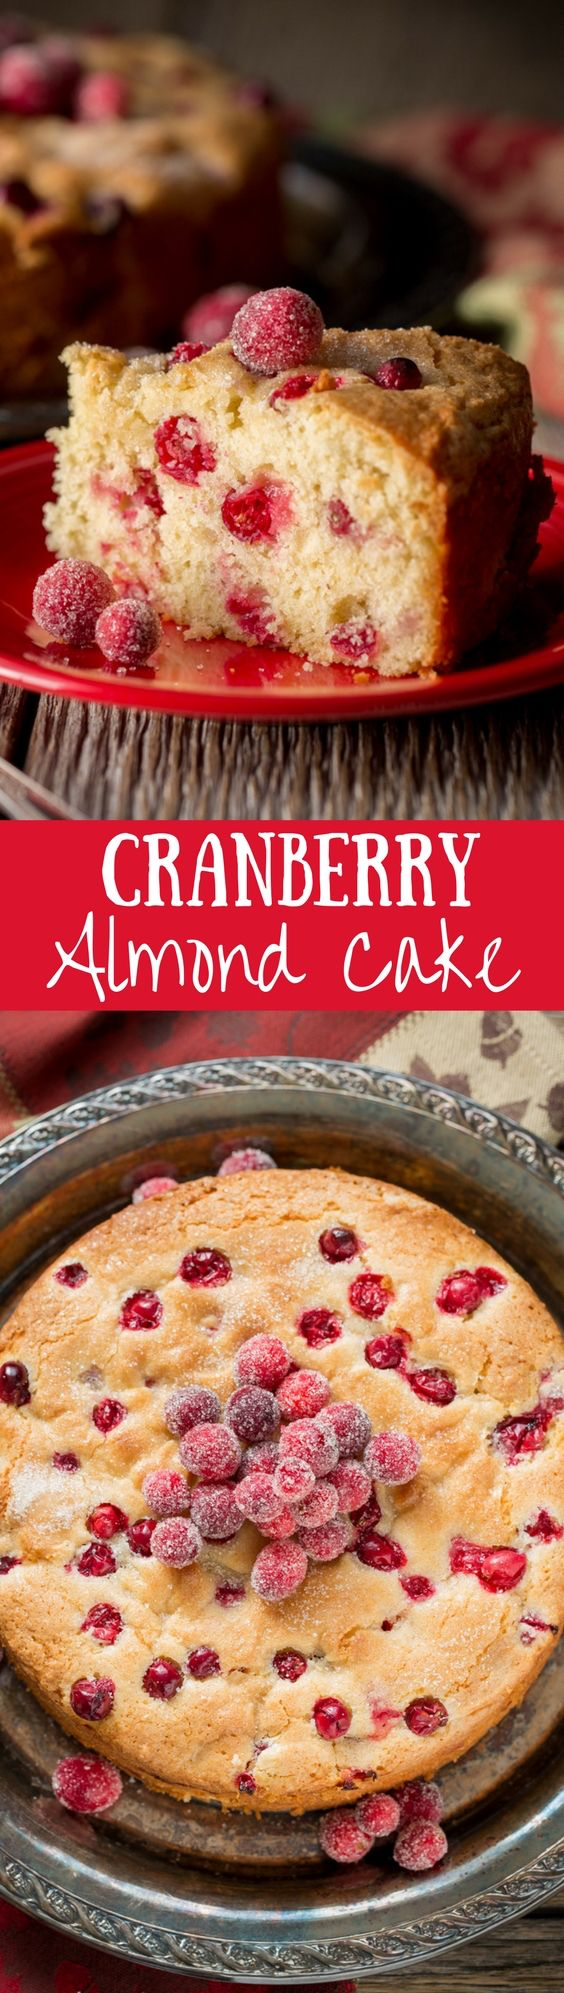 Cranberry Almond Cake - perfect as a breakfast cake, a light dessert after lunch or an anytime snack cake.  www.savingdessert.com